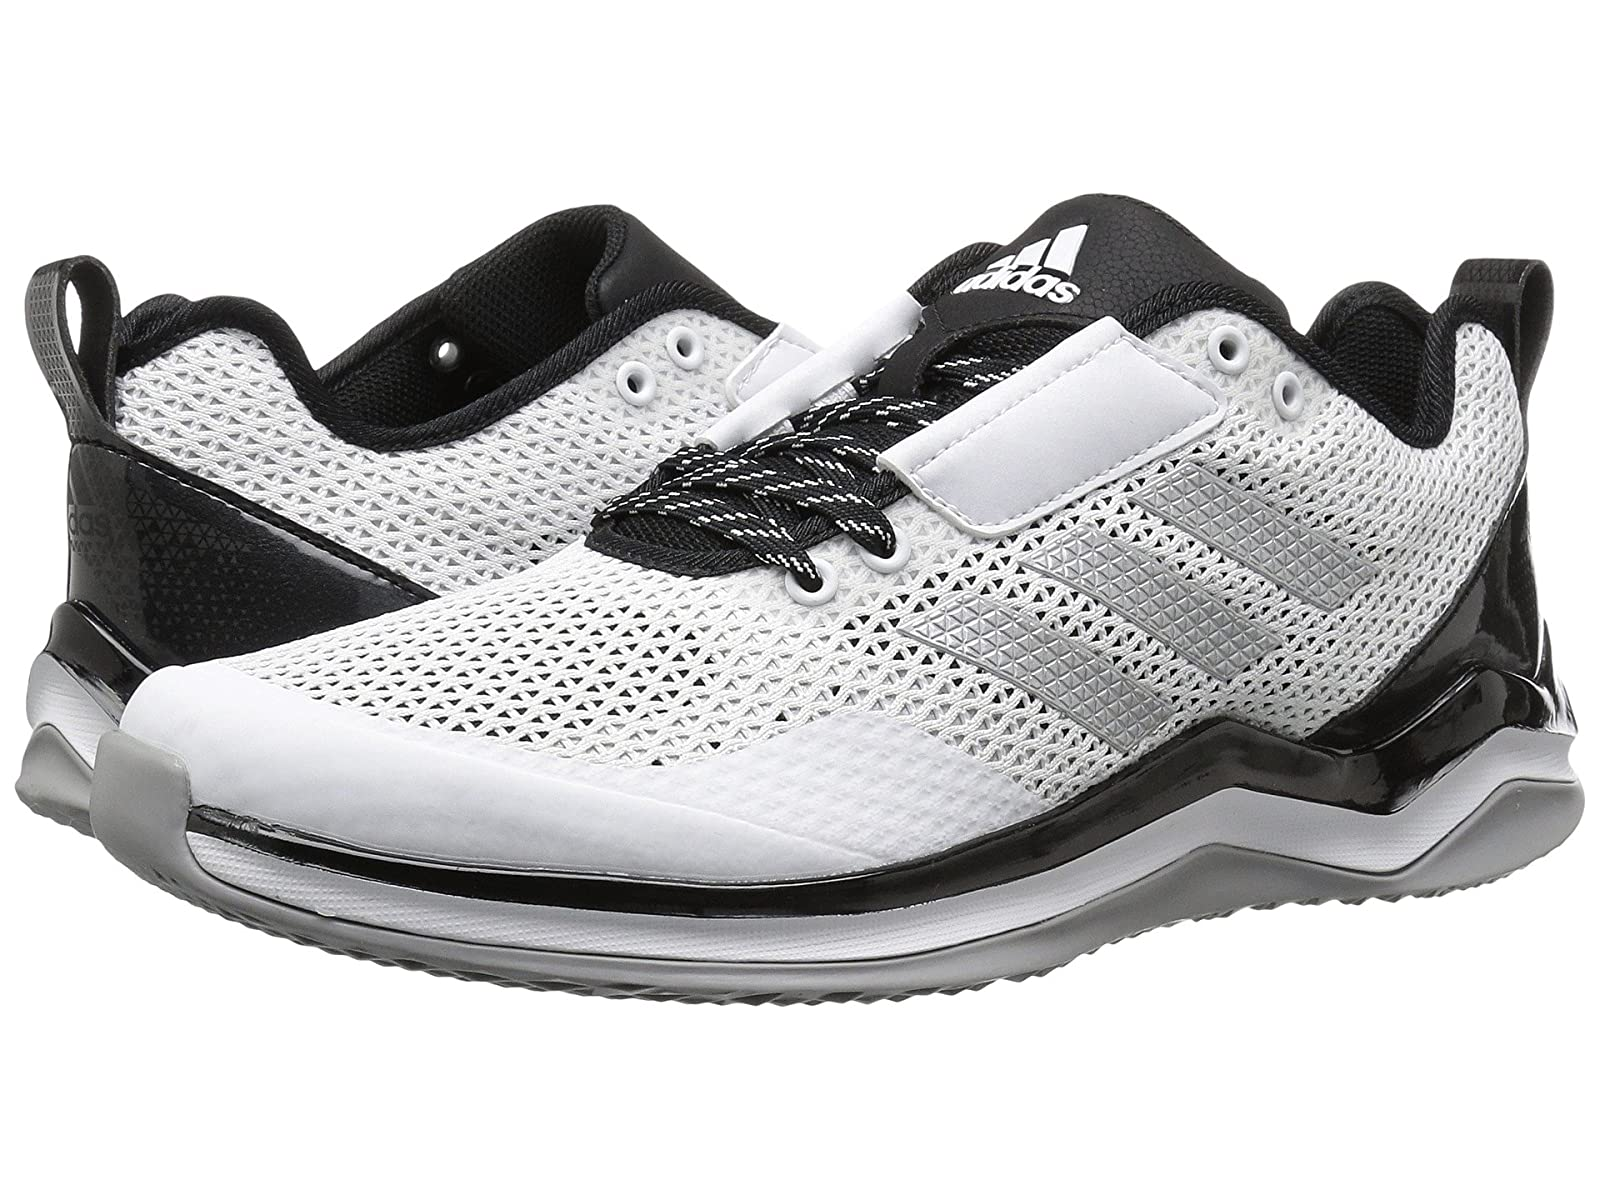 adidas Speed Trainer 3.0Stylish and characteristic shoes